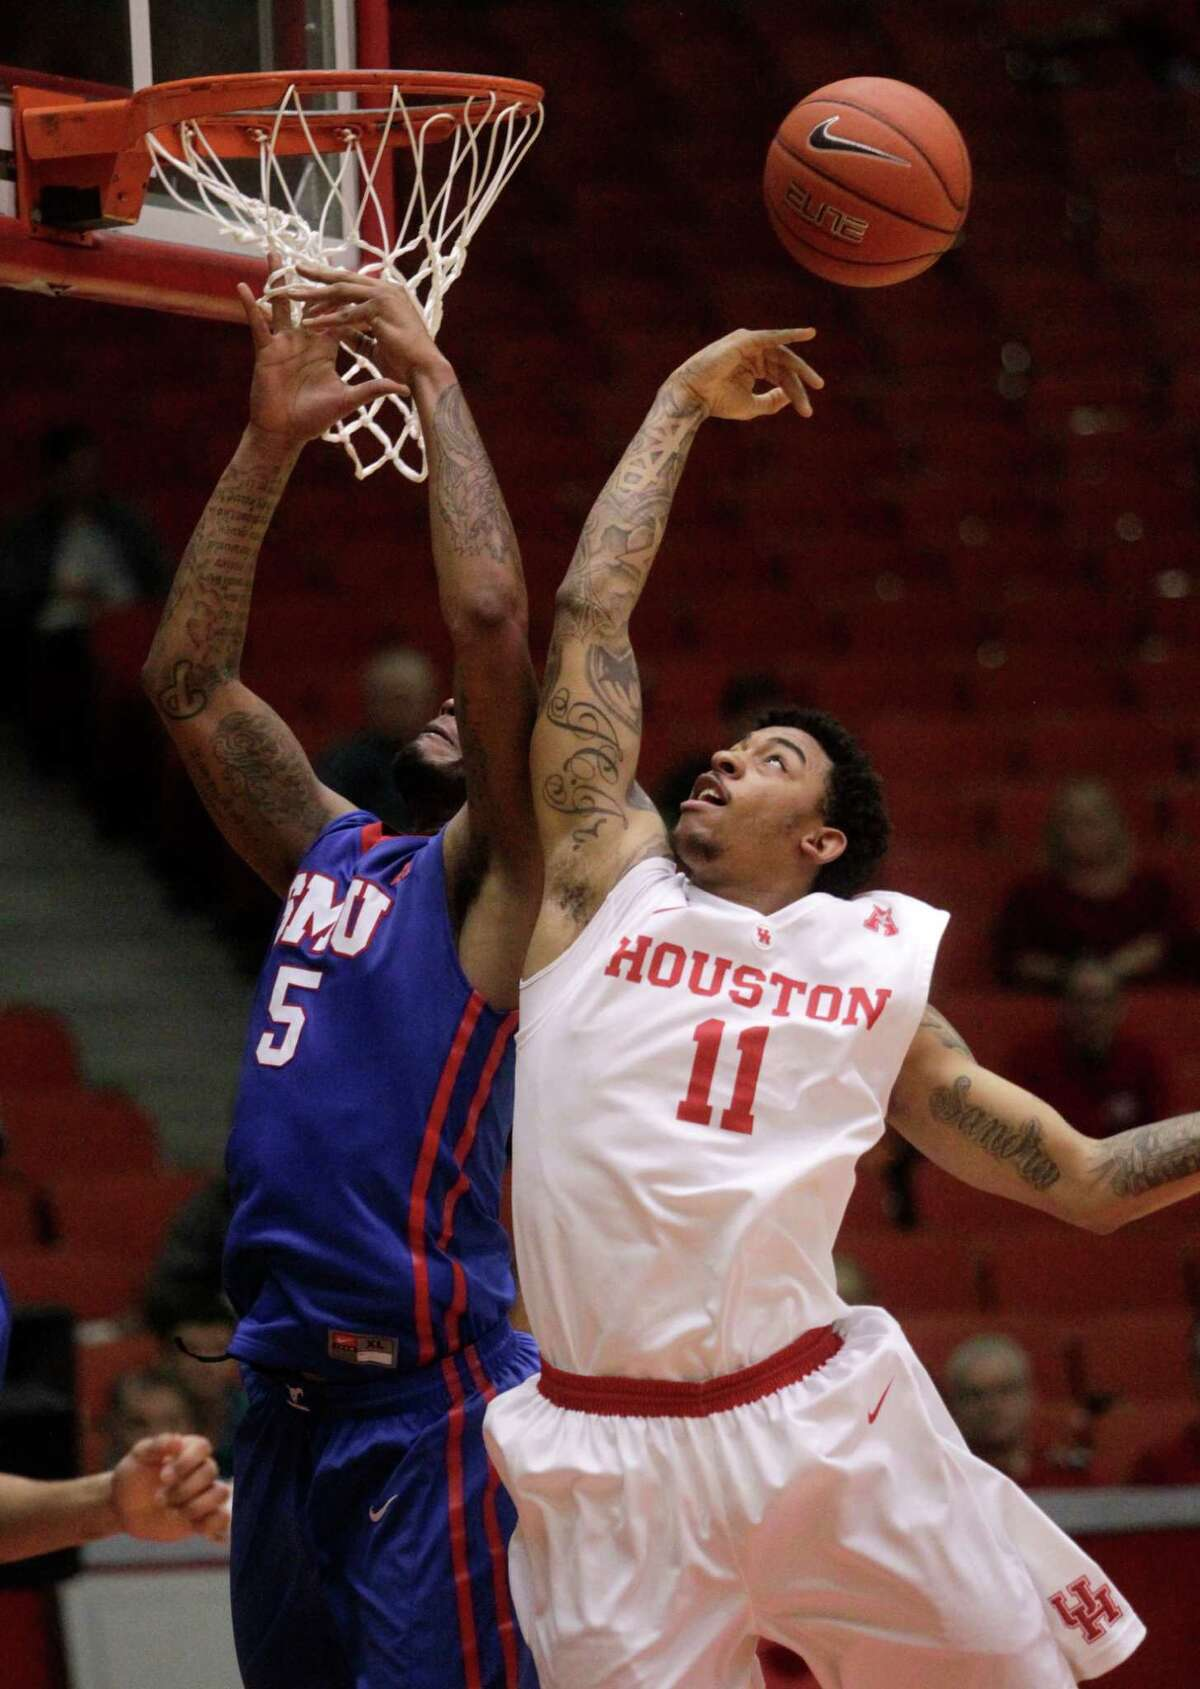 Houston Cougars JC Washington (5) takes a shot over SMU's Markus Kennedy (5) during the second half of a college basketball game on Thursday, Feb. 12, 2015, in Houston.